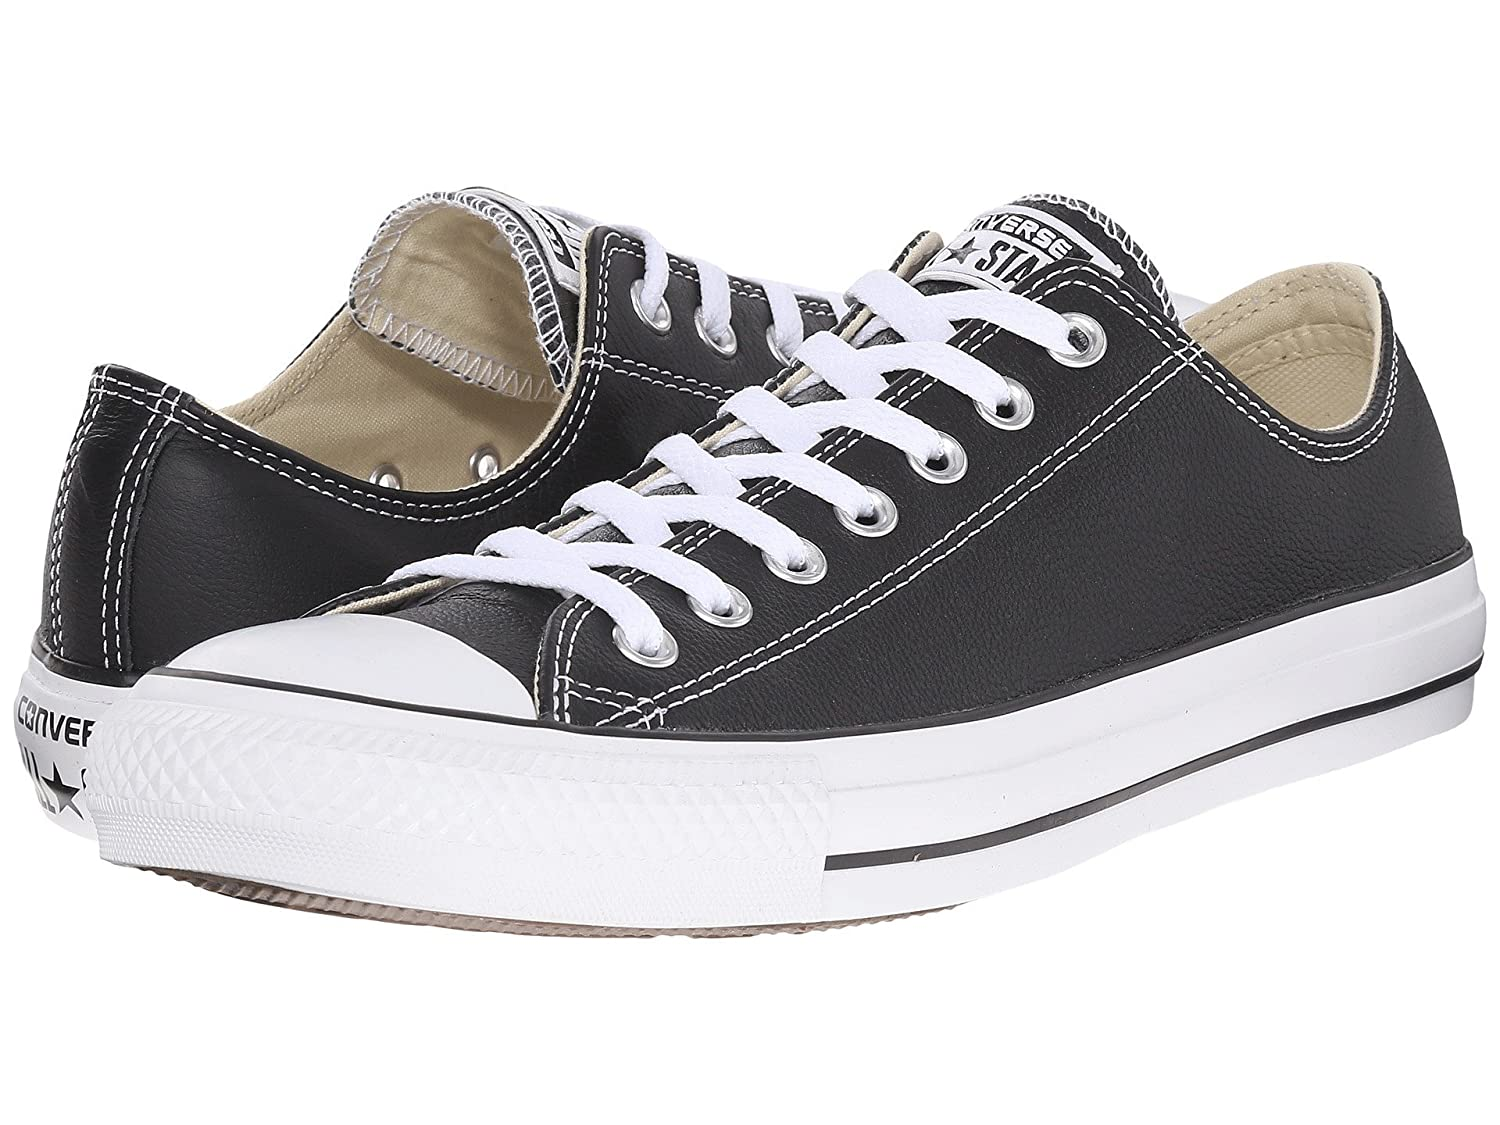 8553828a07bbac Converse Unisex-Adult Chuck Taylor All Star Core Ox Trainers  Amazon.co.uk   Shoes   Bags